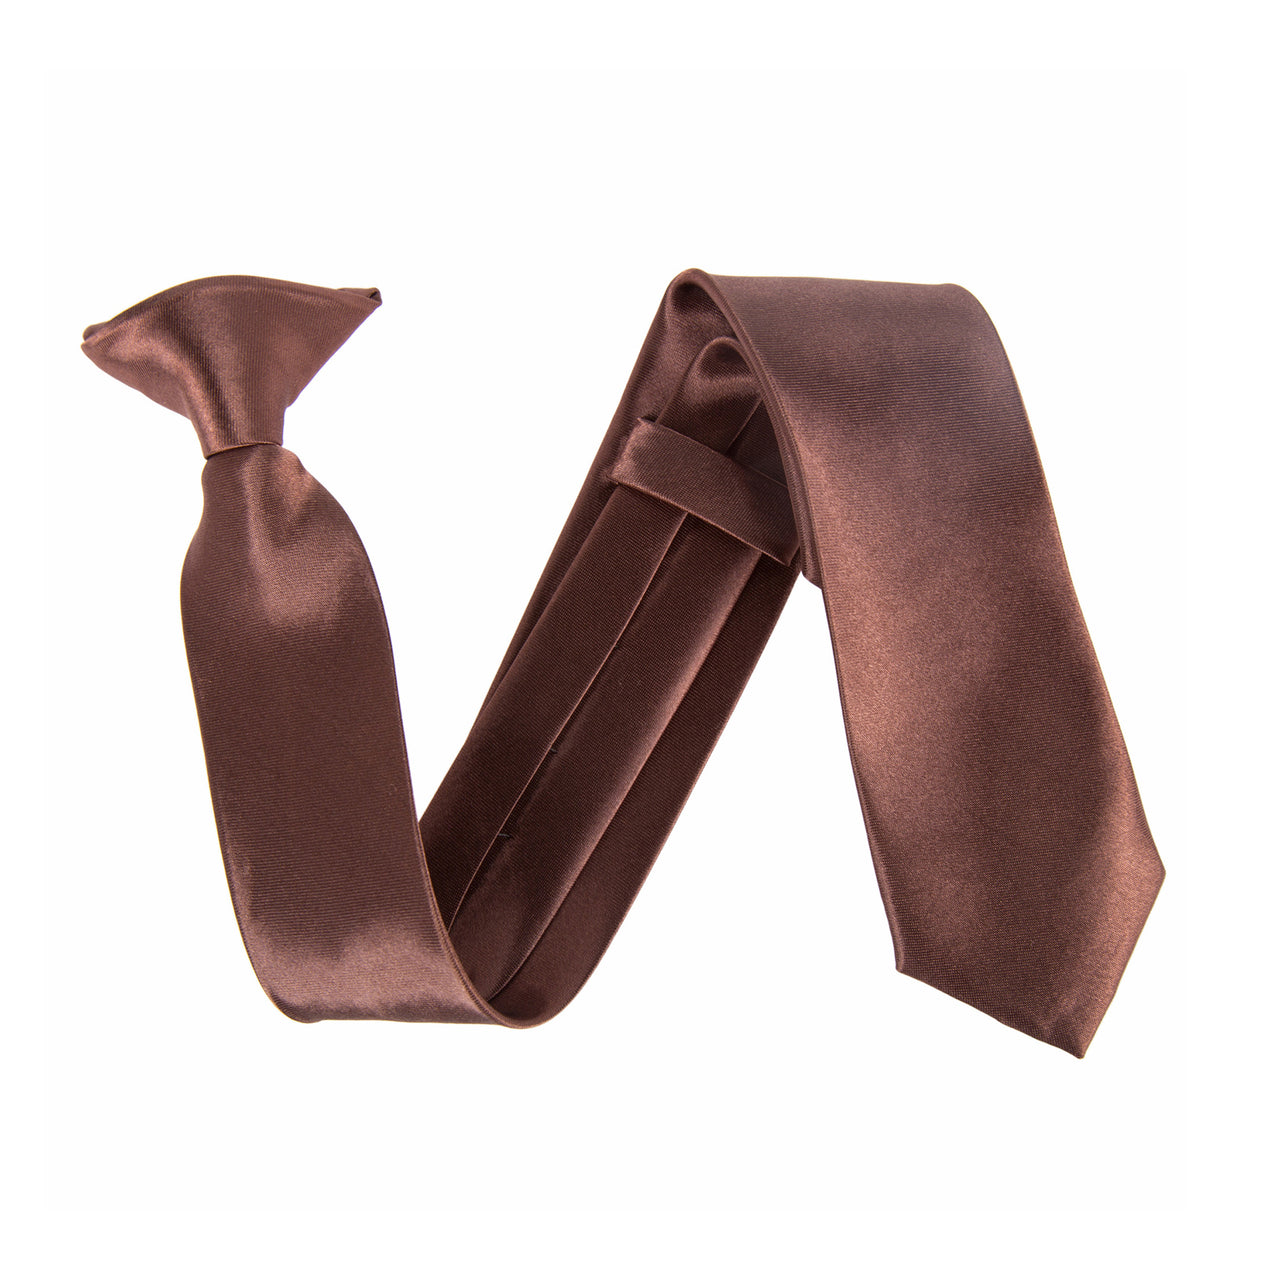 "Wide 3"" Clip On Safety Tie - Brown"